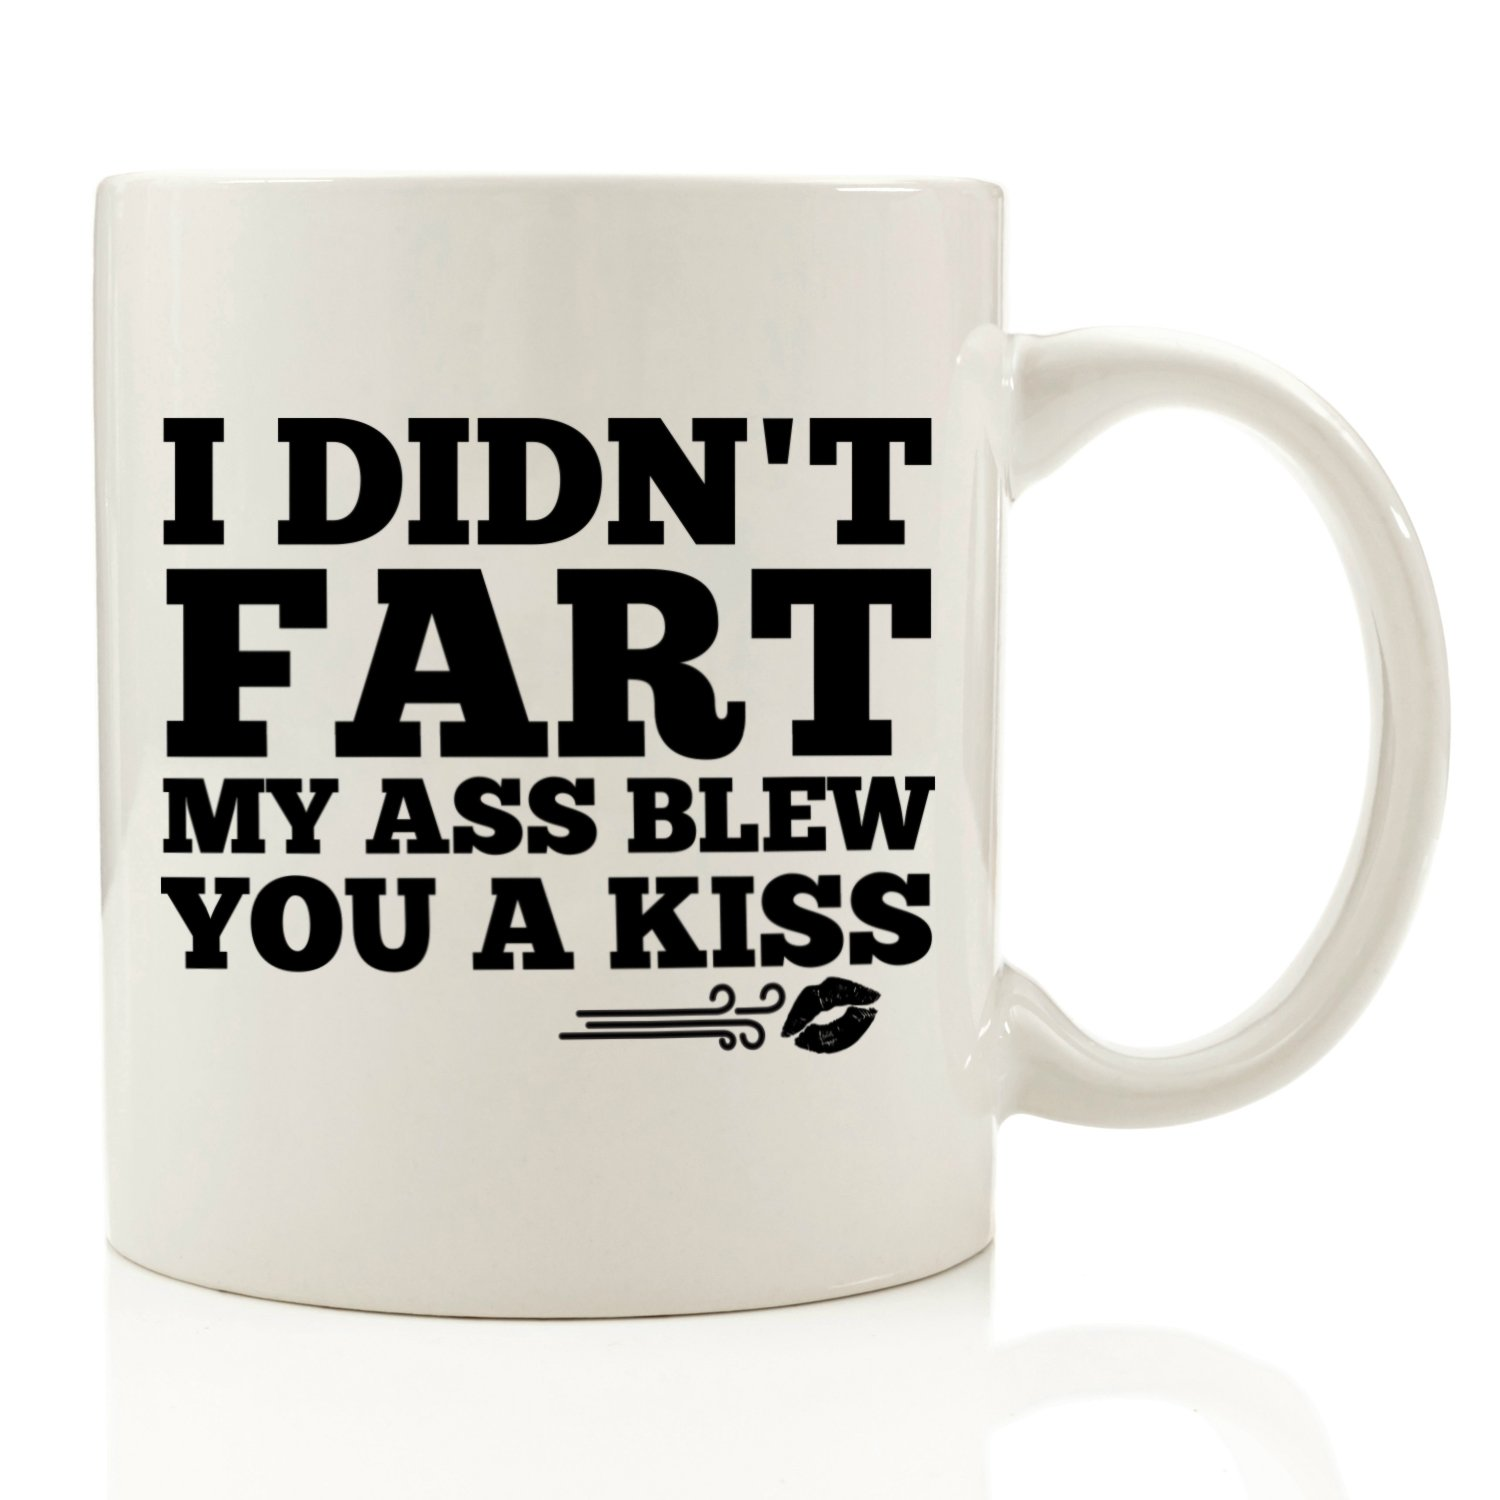 I Didn't Fart, My Ass Blew You A Kiss Funny Coffee Mug 11 oz - Birthday Gift For Men - Best Office Cup & Father's Day Gag Present Idea For Dad, Brother, Husband, Boyfriend, Male Coworkers, Him